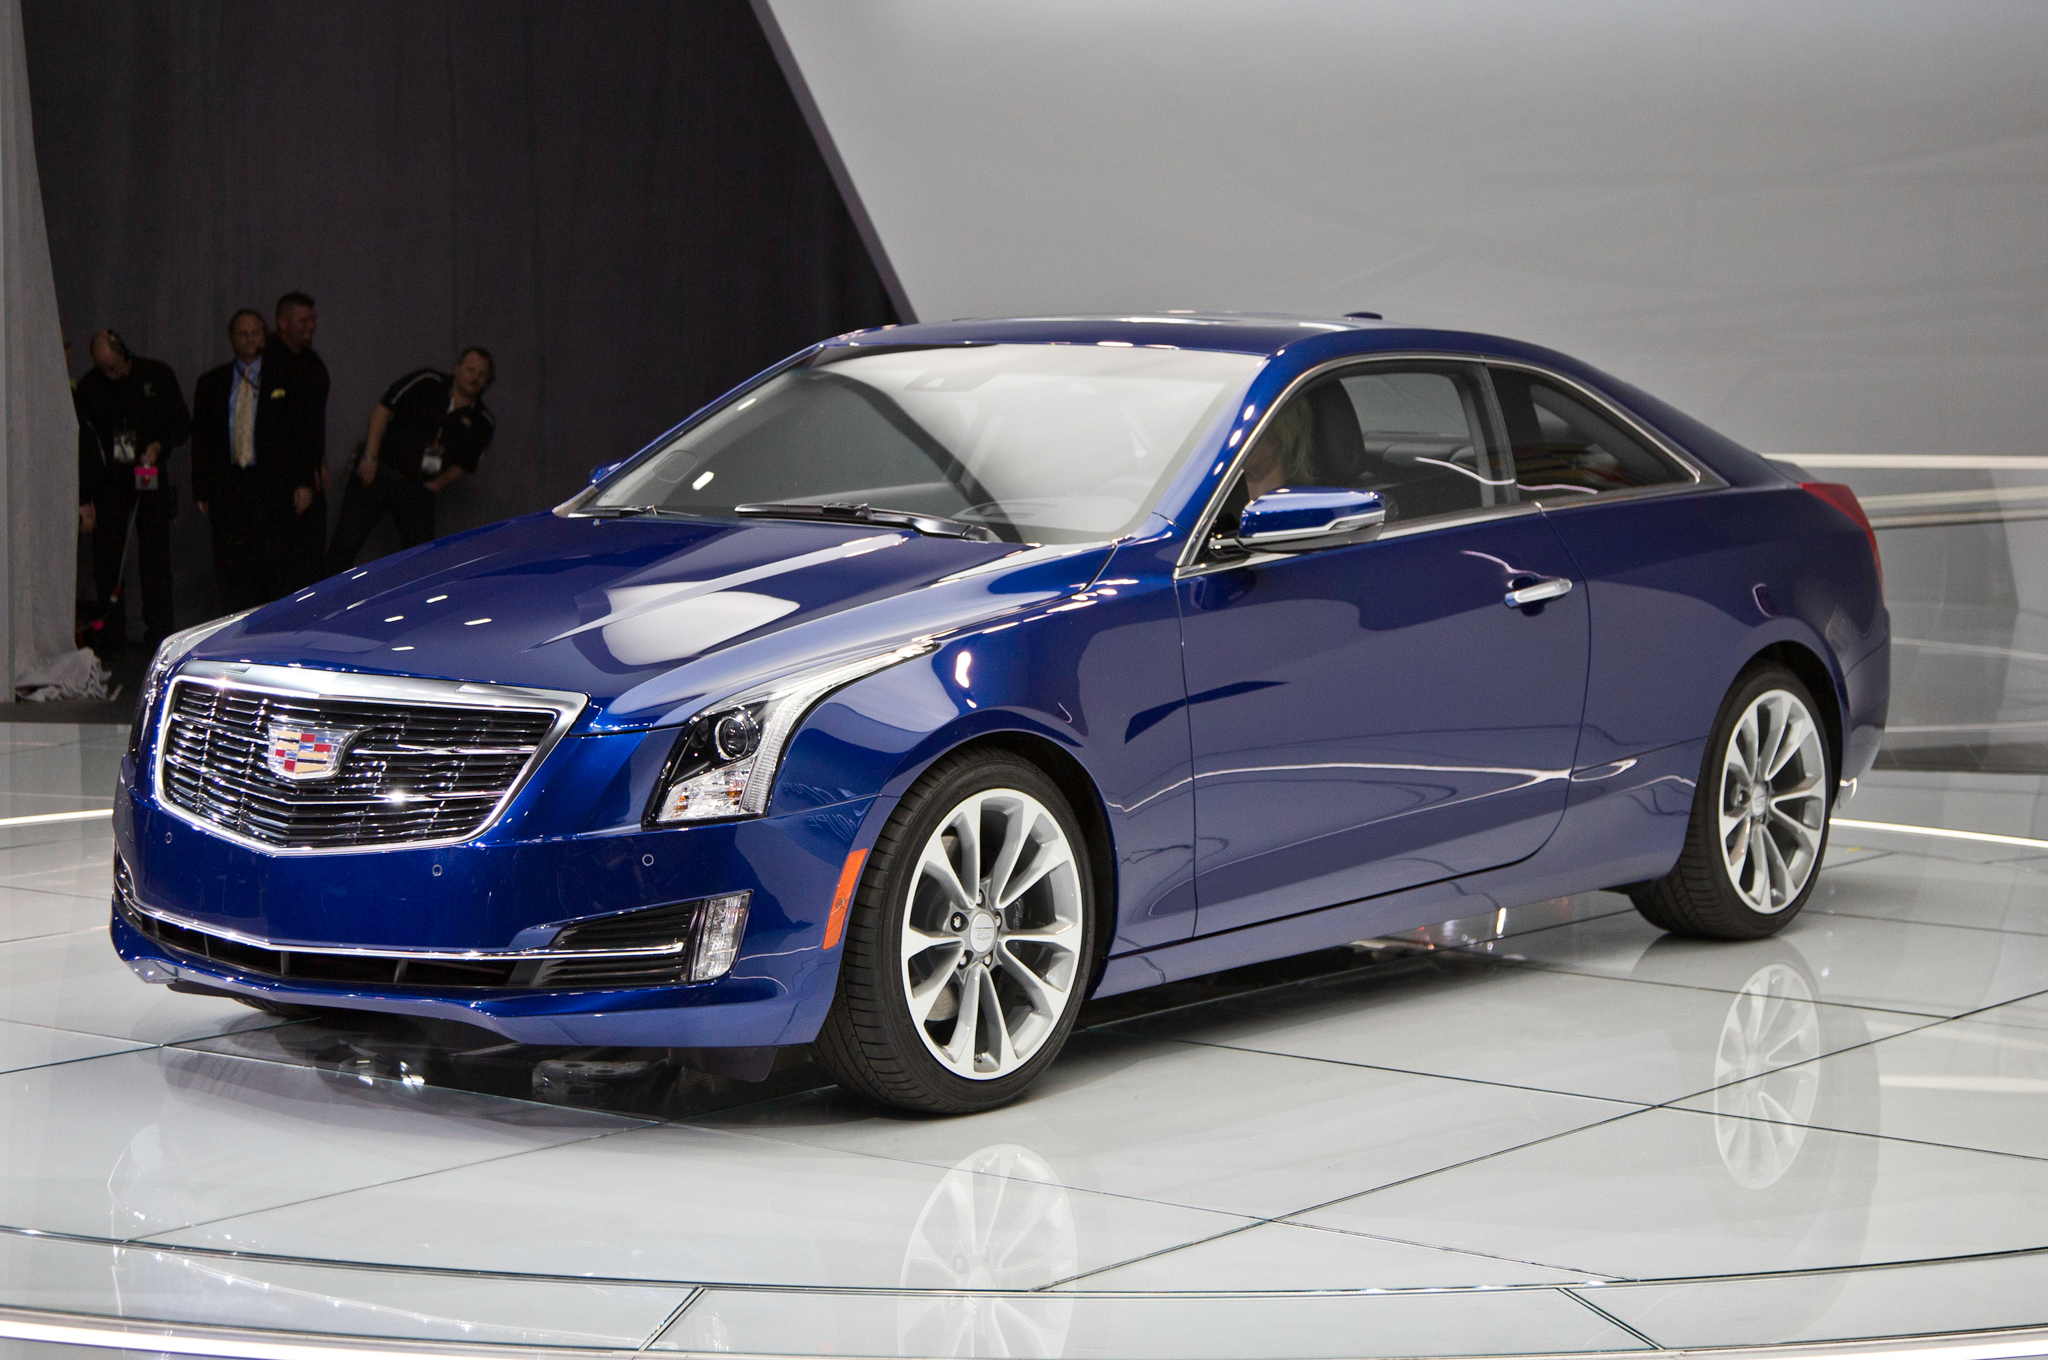 2015 Cadillac Ats Coupe Front View (Photo 16 of 21)